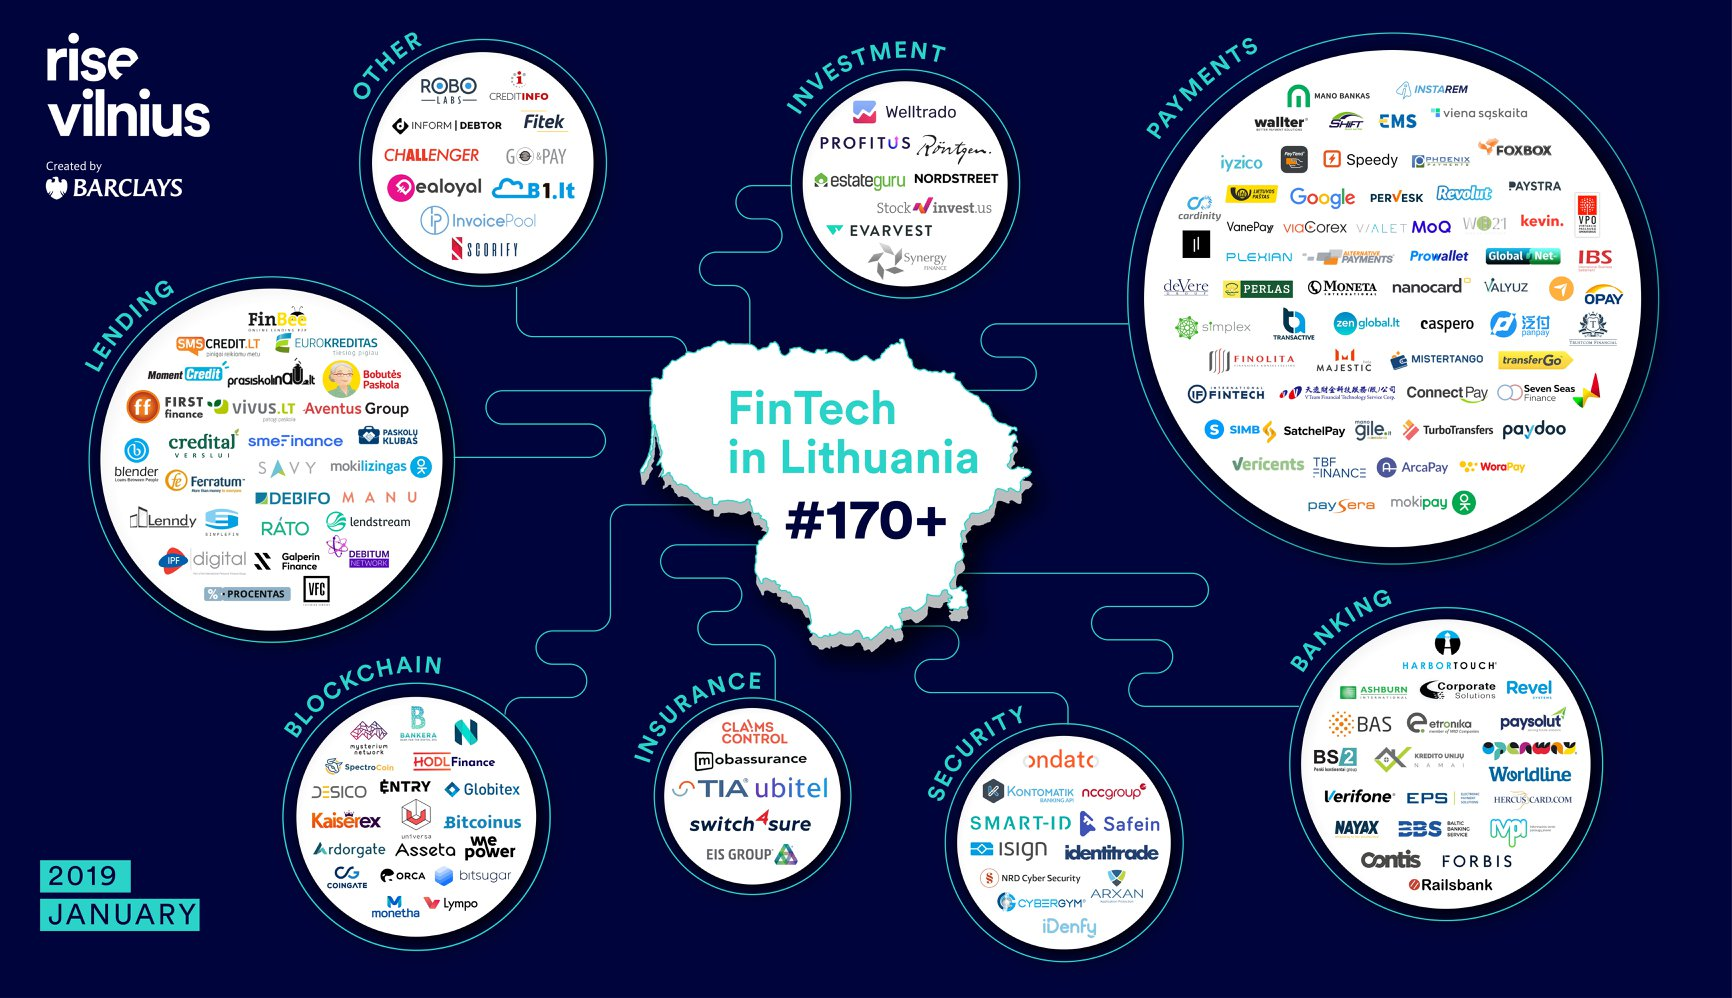 Joining the fastest growing hotspot for FinTech innovation in Europe